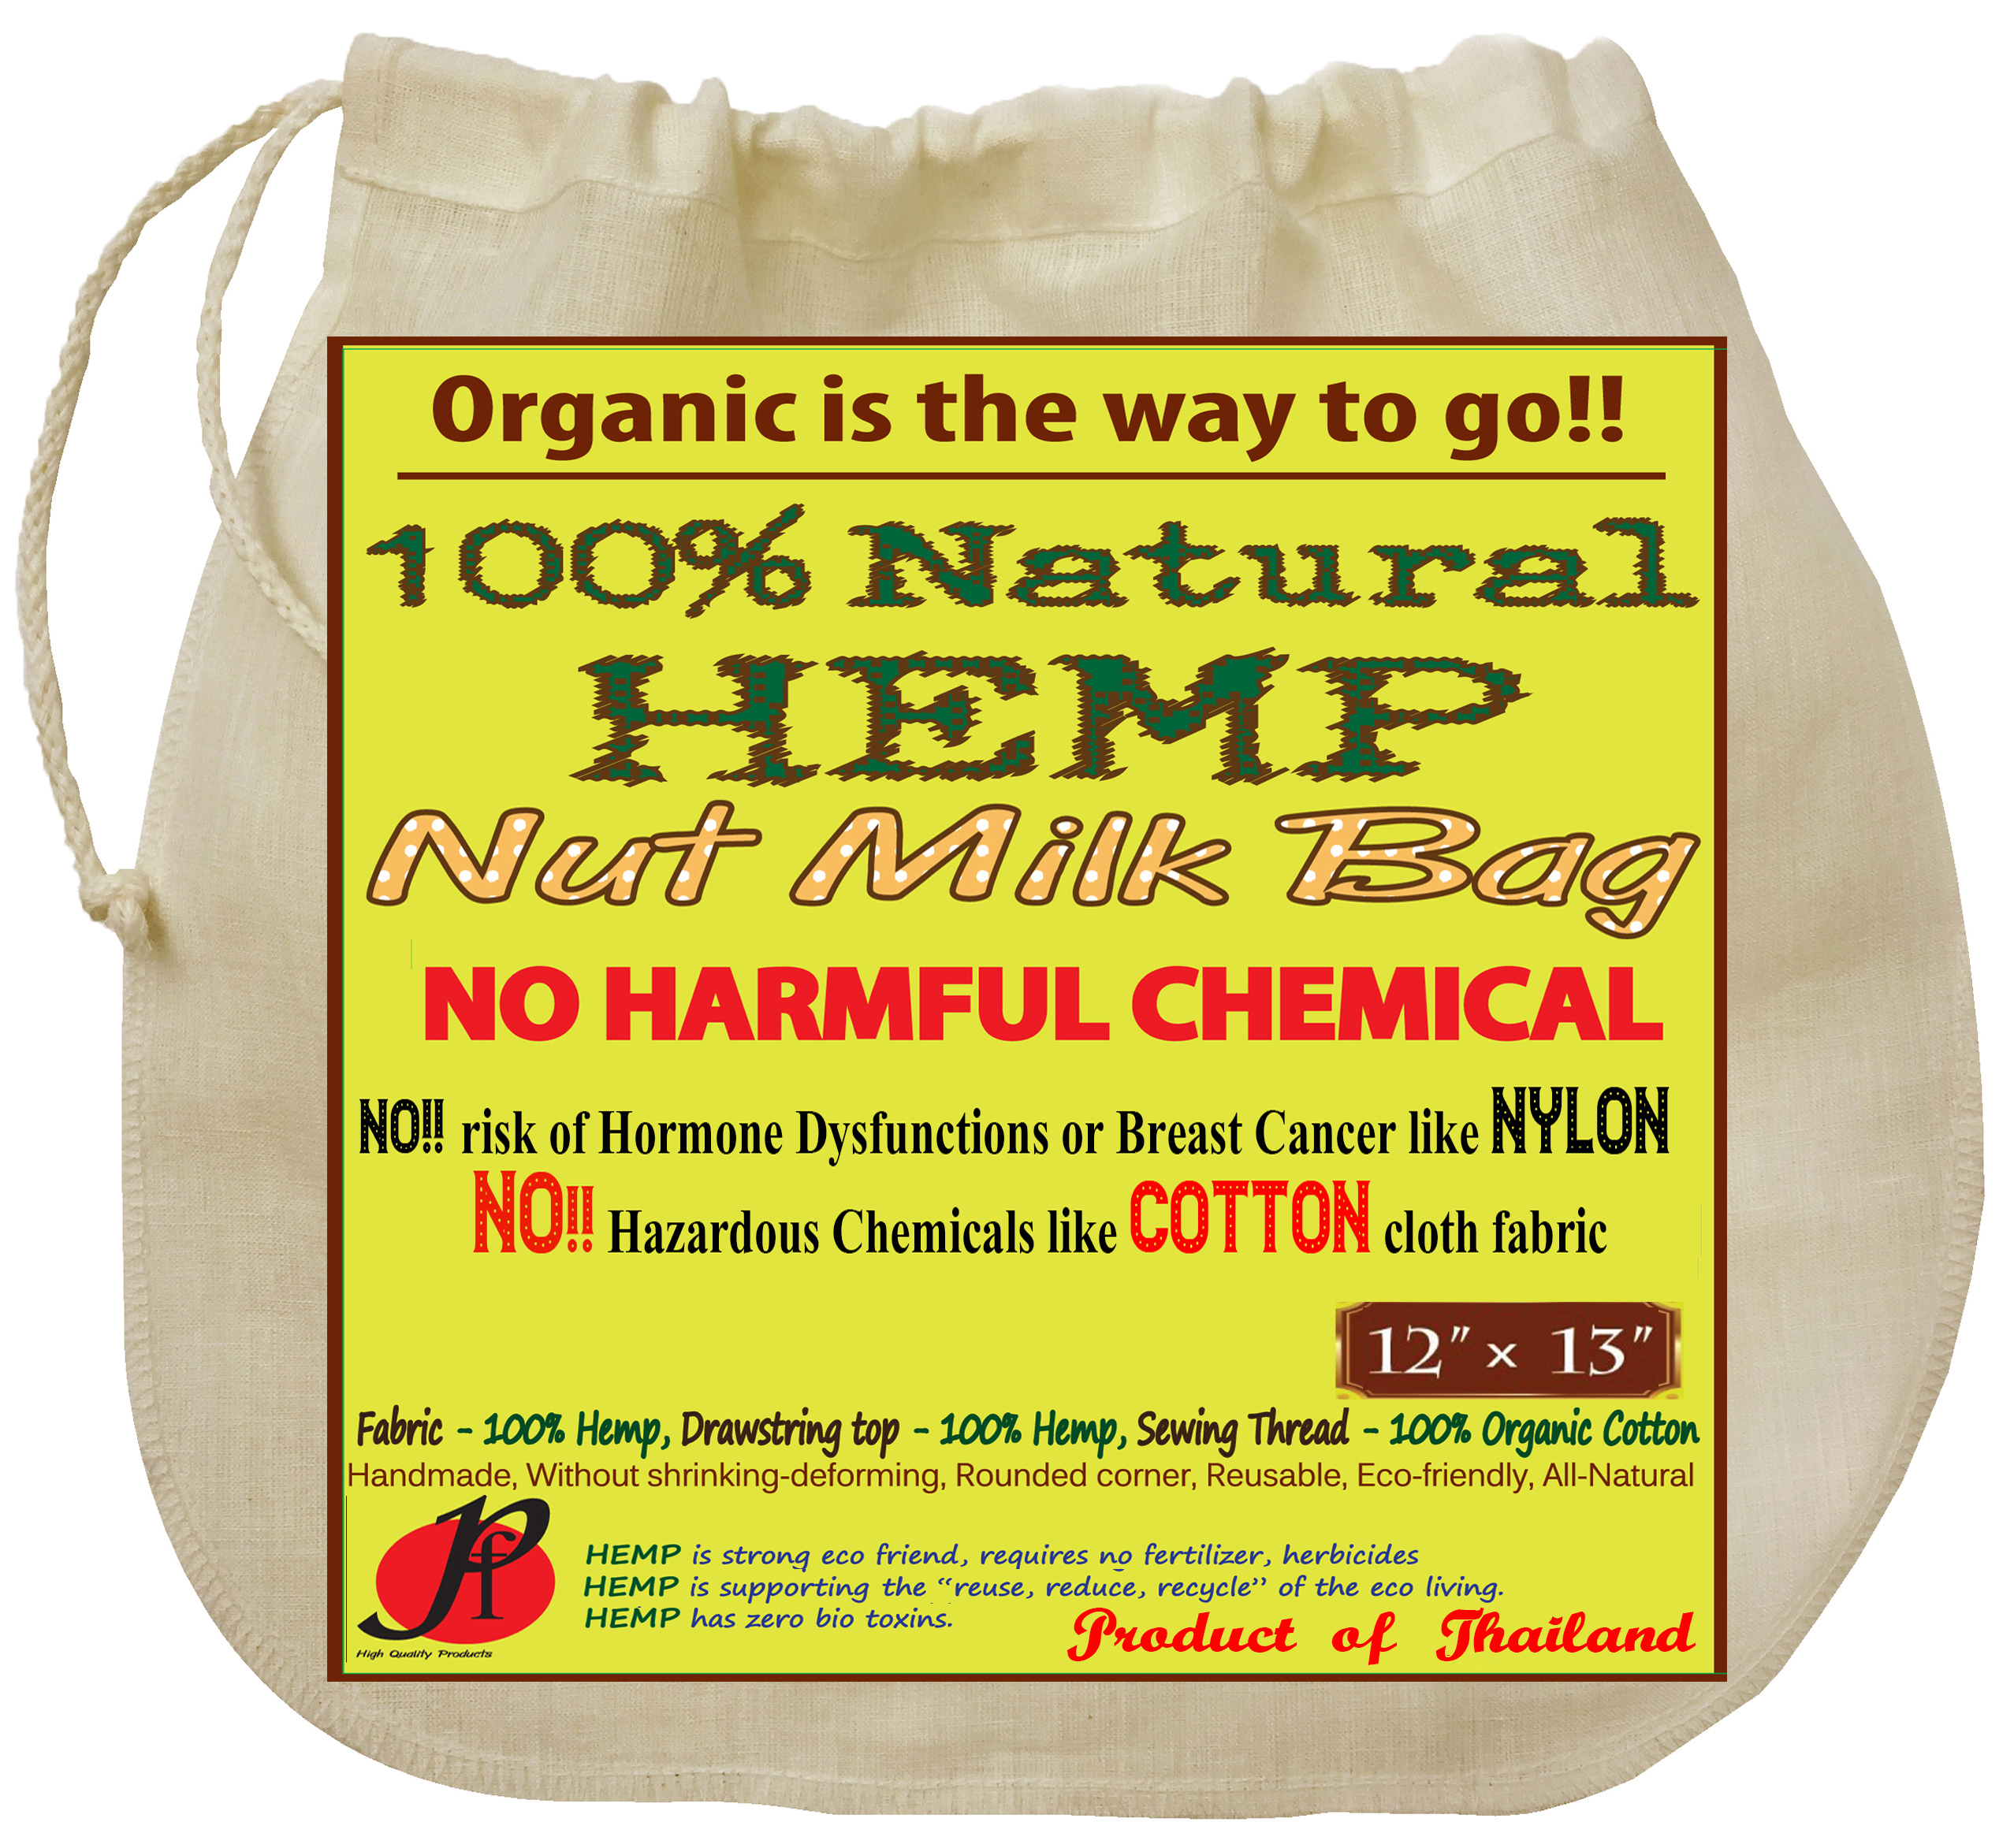 P F Hemp Nut Milk Bag All Natural No Harmful Chemical From Pure Fabric Food Strainer Super Healthy Making Yogurt Ghee Reusable Cold Brew